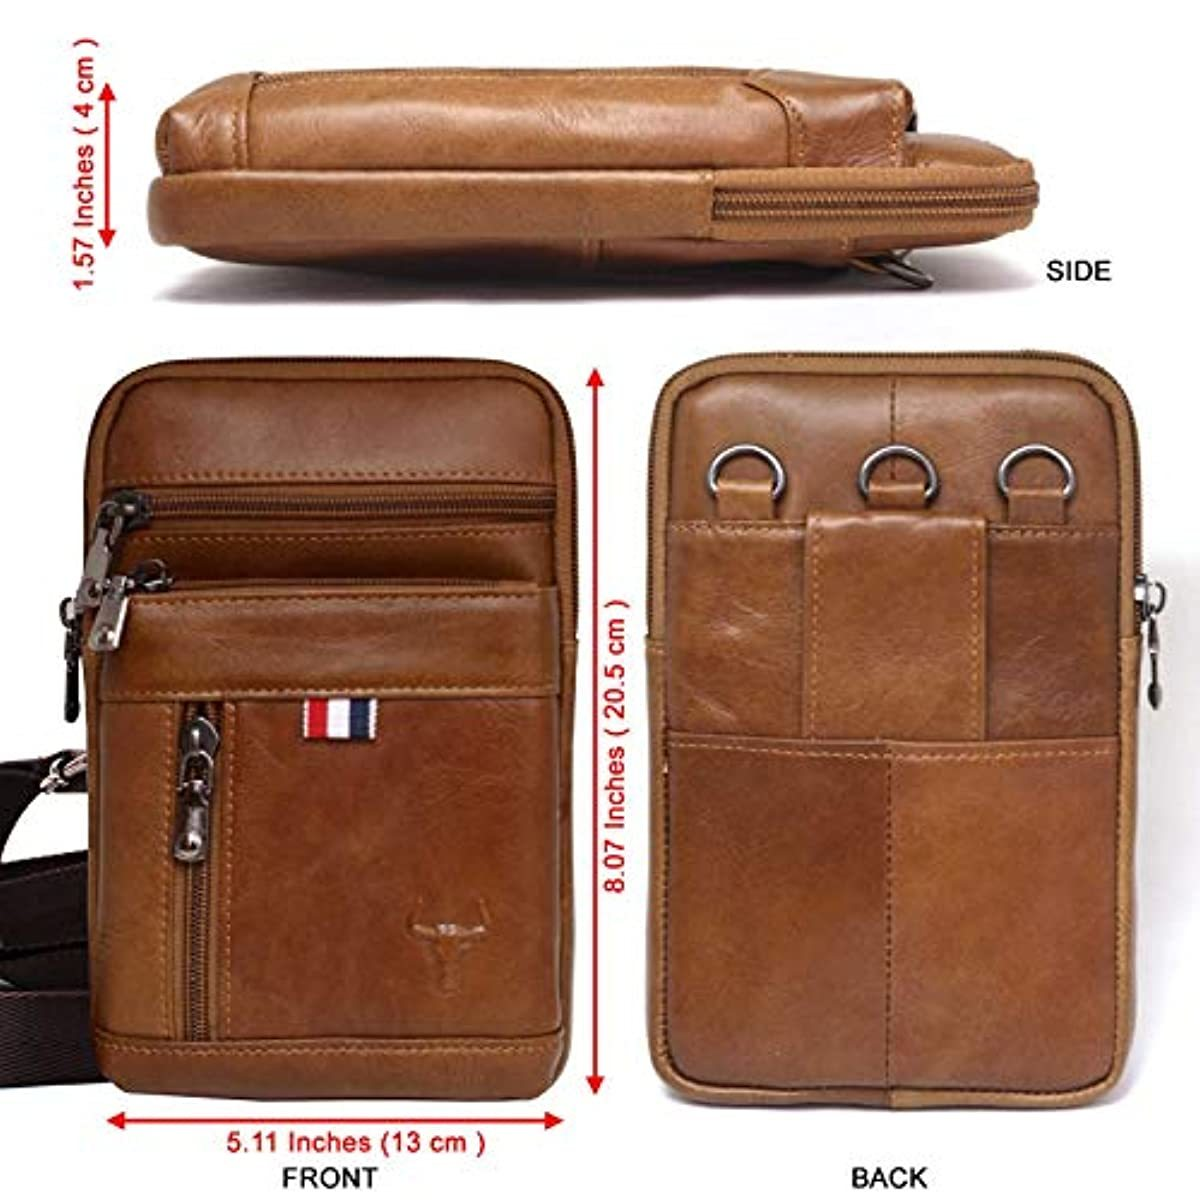 iPhone 11 Pro Max Phone purse Leather Cell phone Holster Case Belt Loop Pouch Travel Messenger Bag 1313 - ENCACC